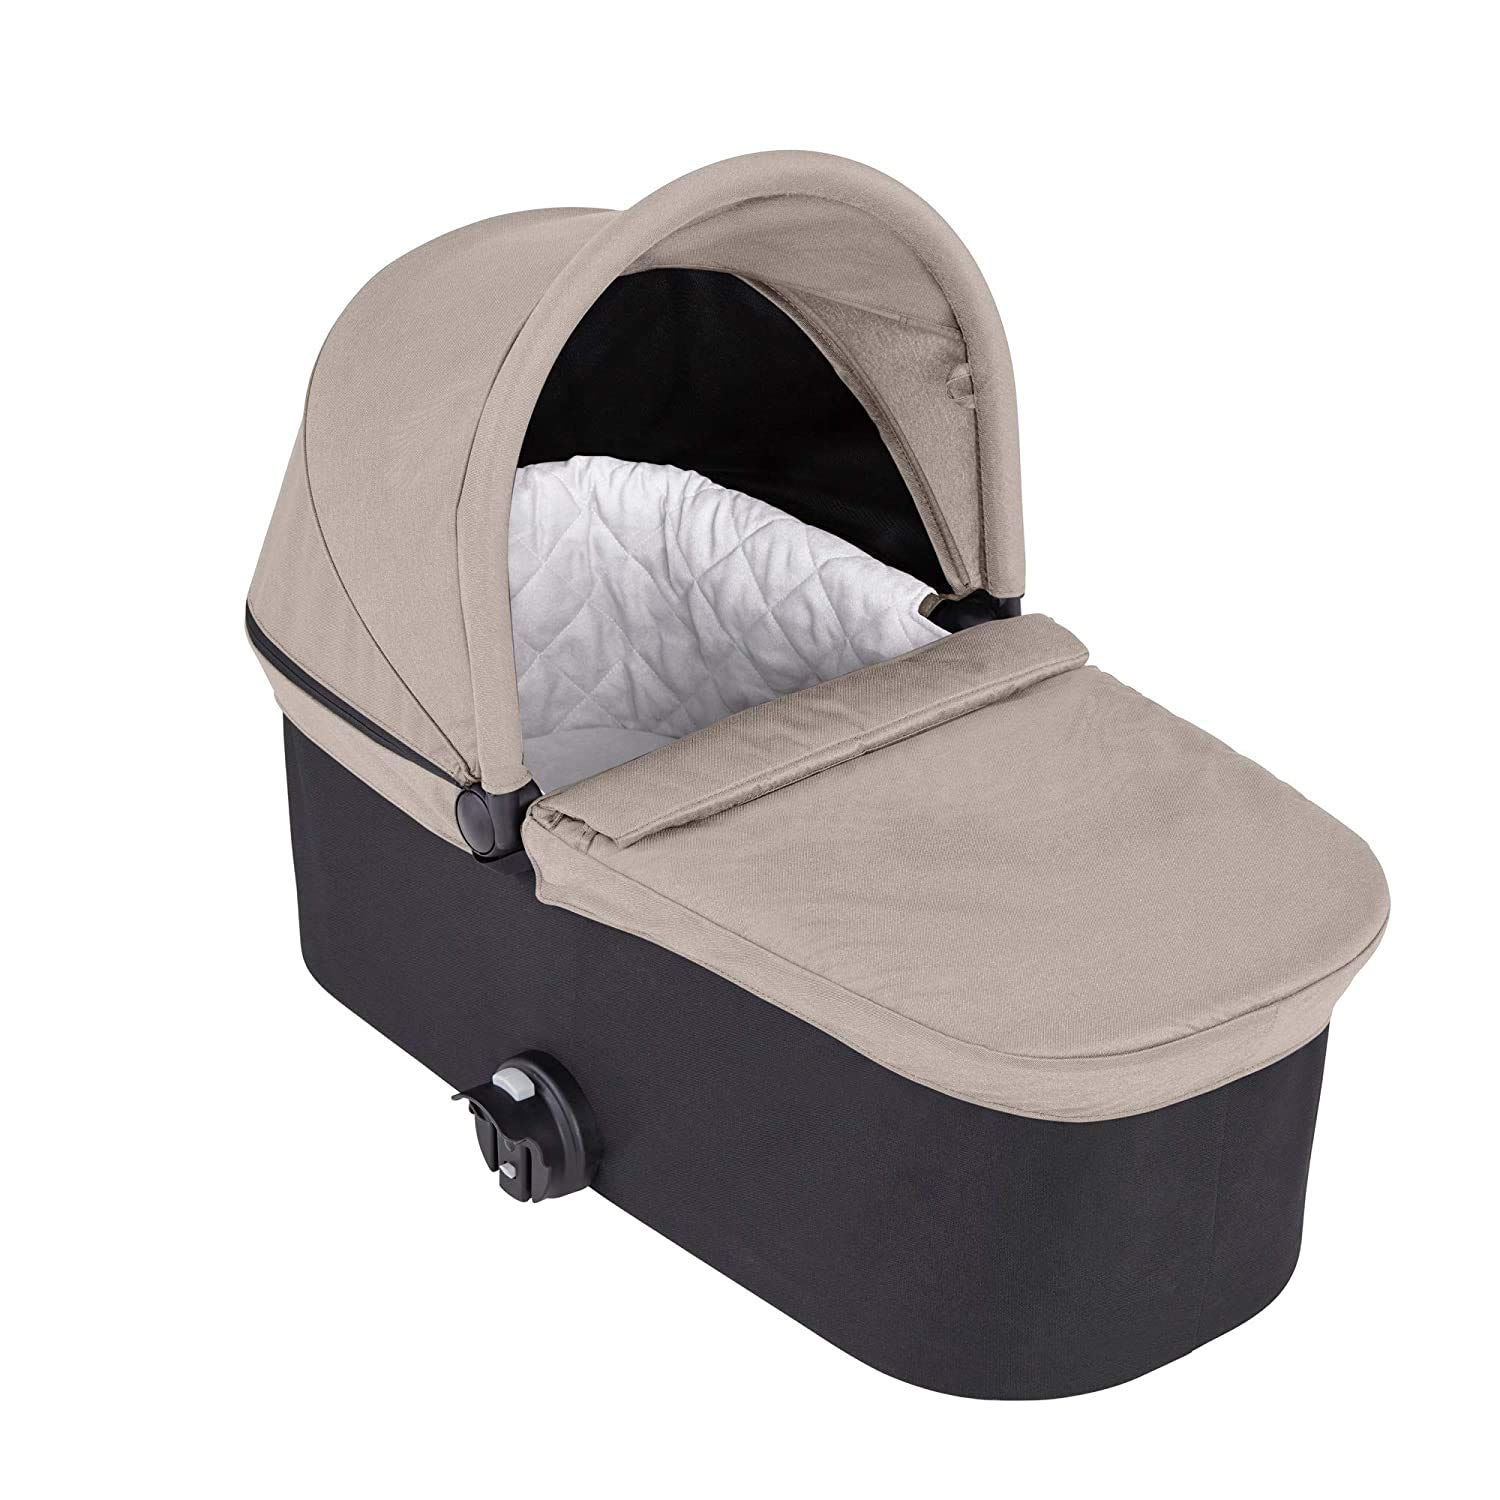 Baby Jogger Deluxe Pram for City Selec, City Select LUX and Summit X3 Strollers, Paloma